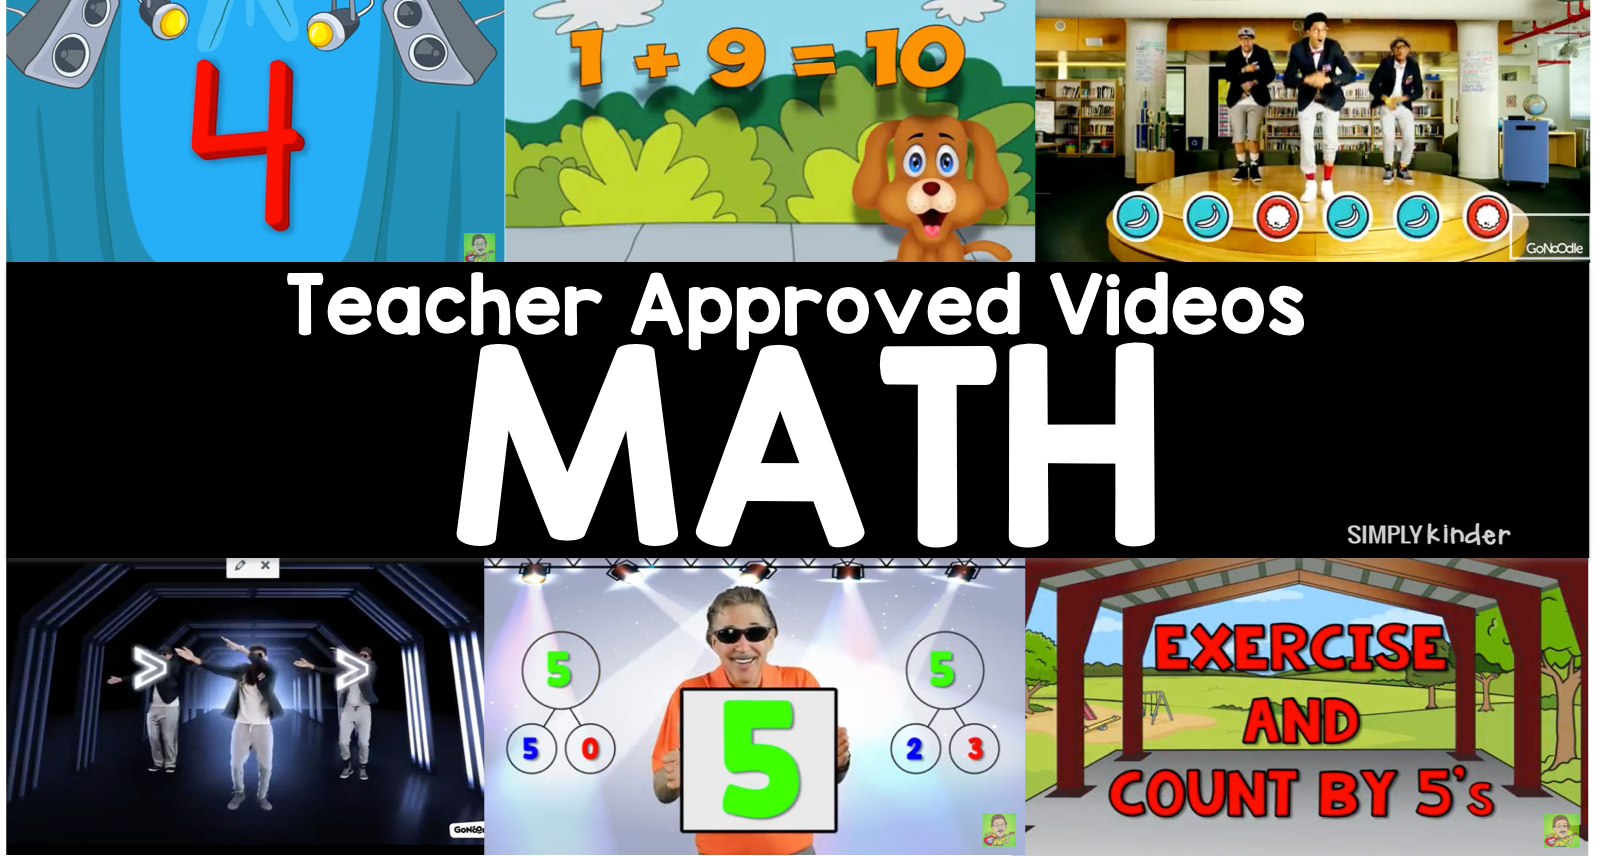 Teacher Approved Math Videos